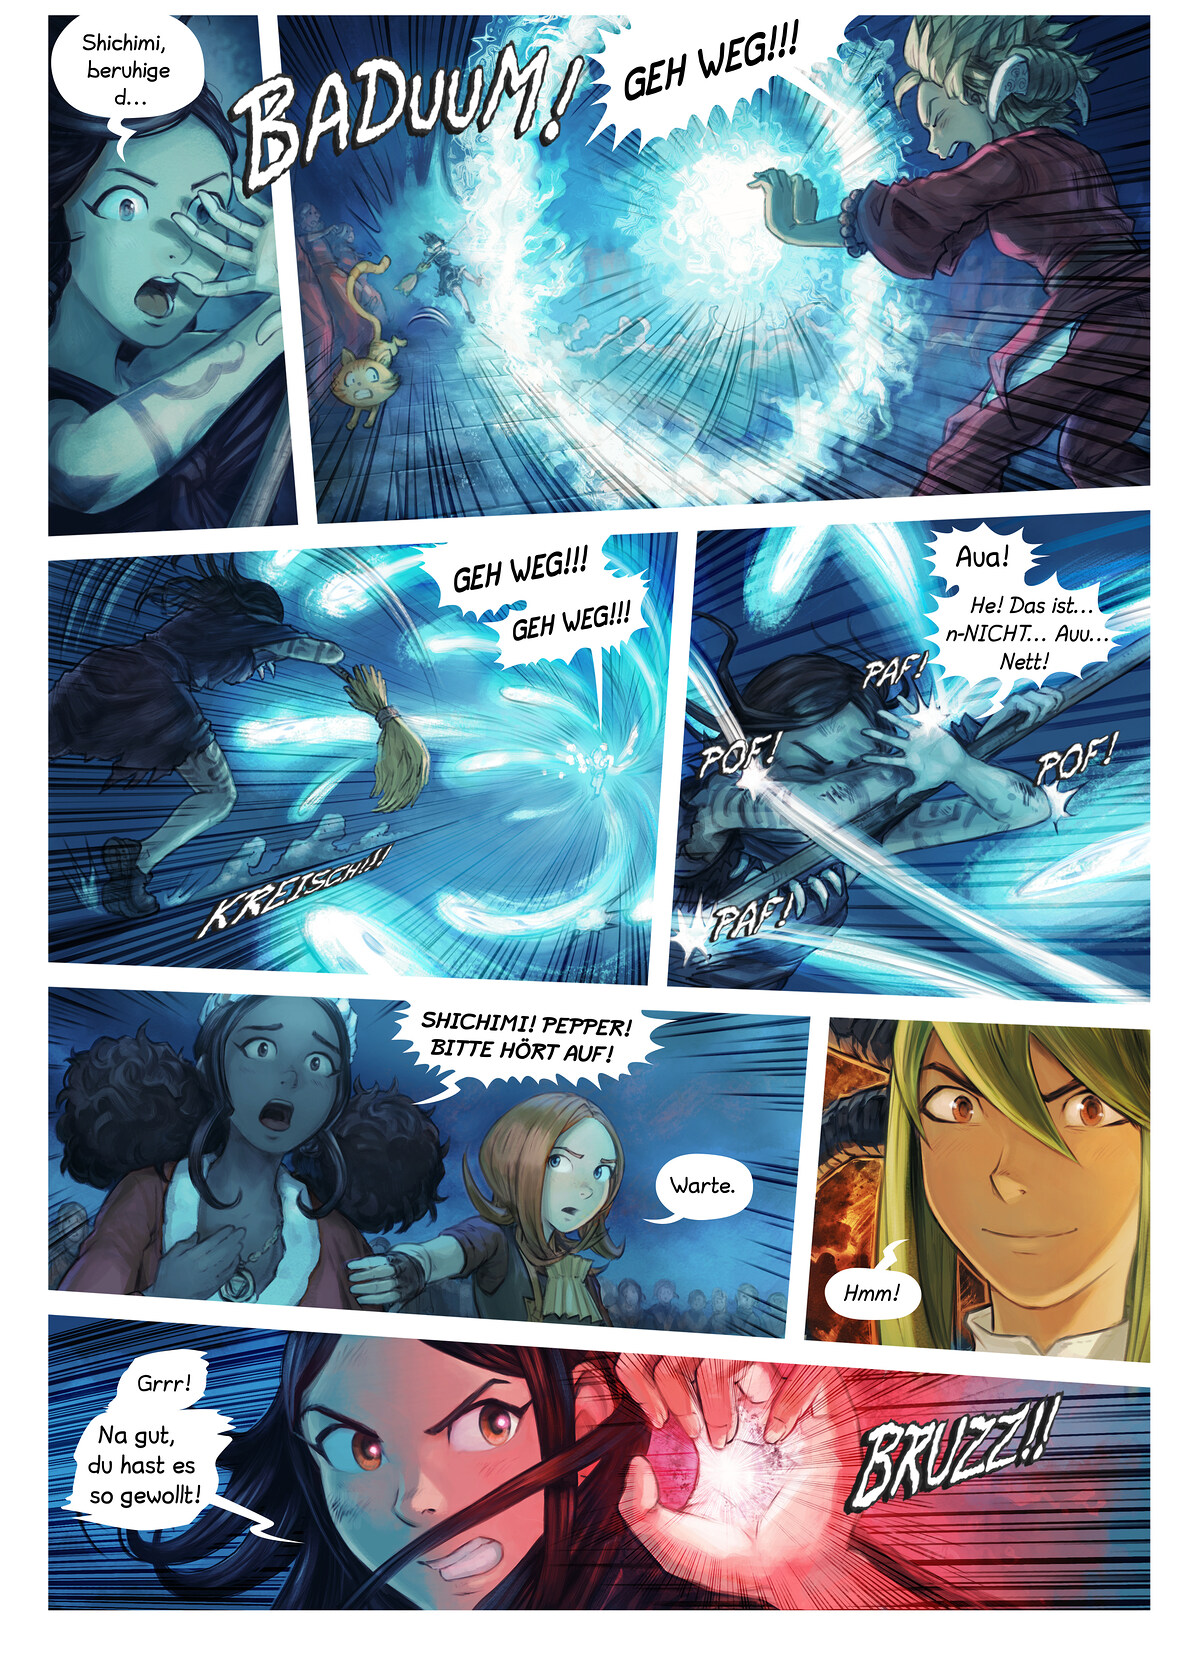 Episode 34: Shichimis Abschluss, Page 6